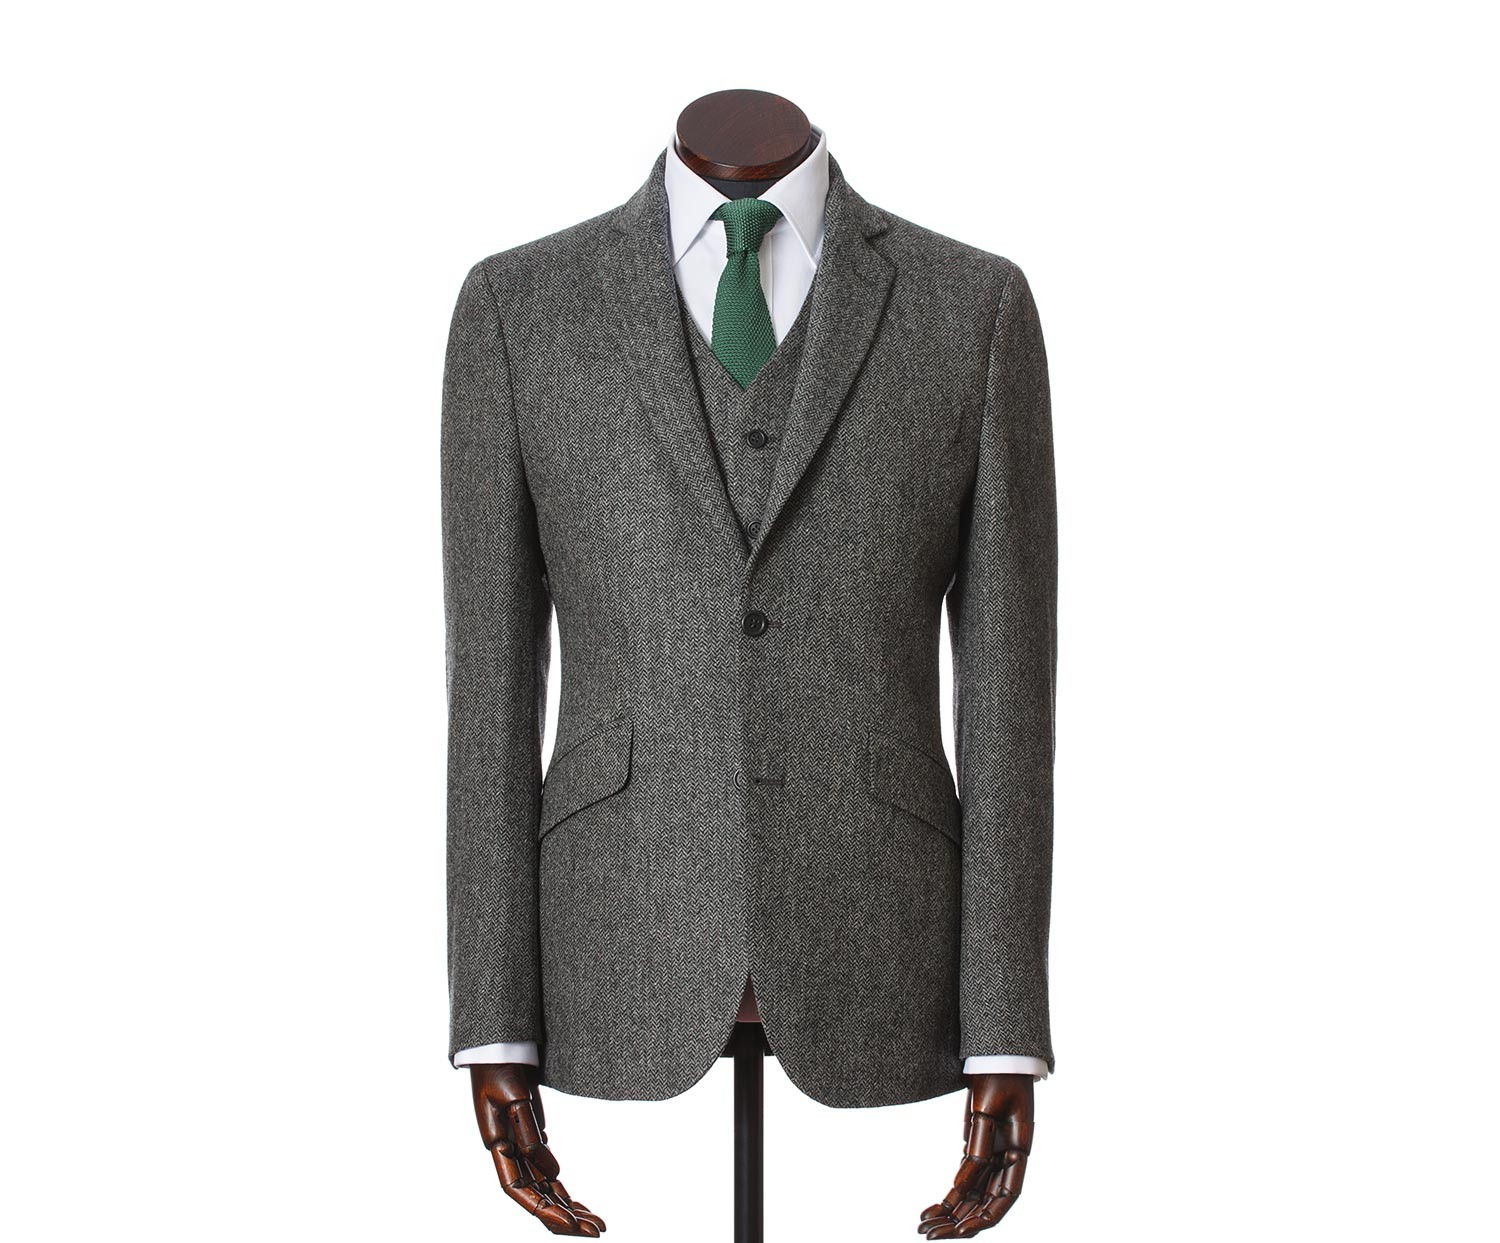 Men's Tweed Suits Martin Charcoal